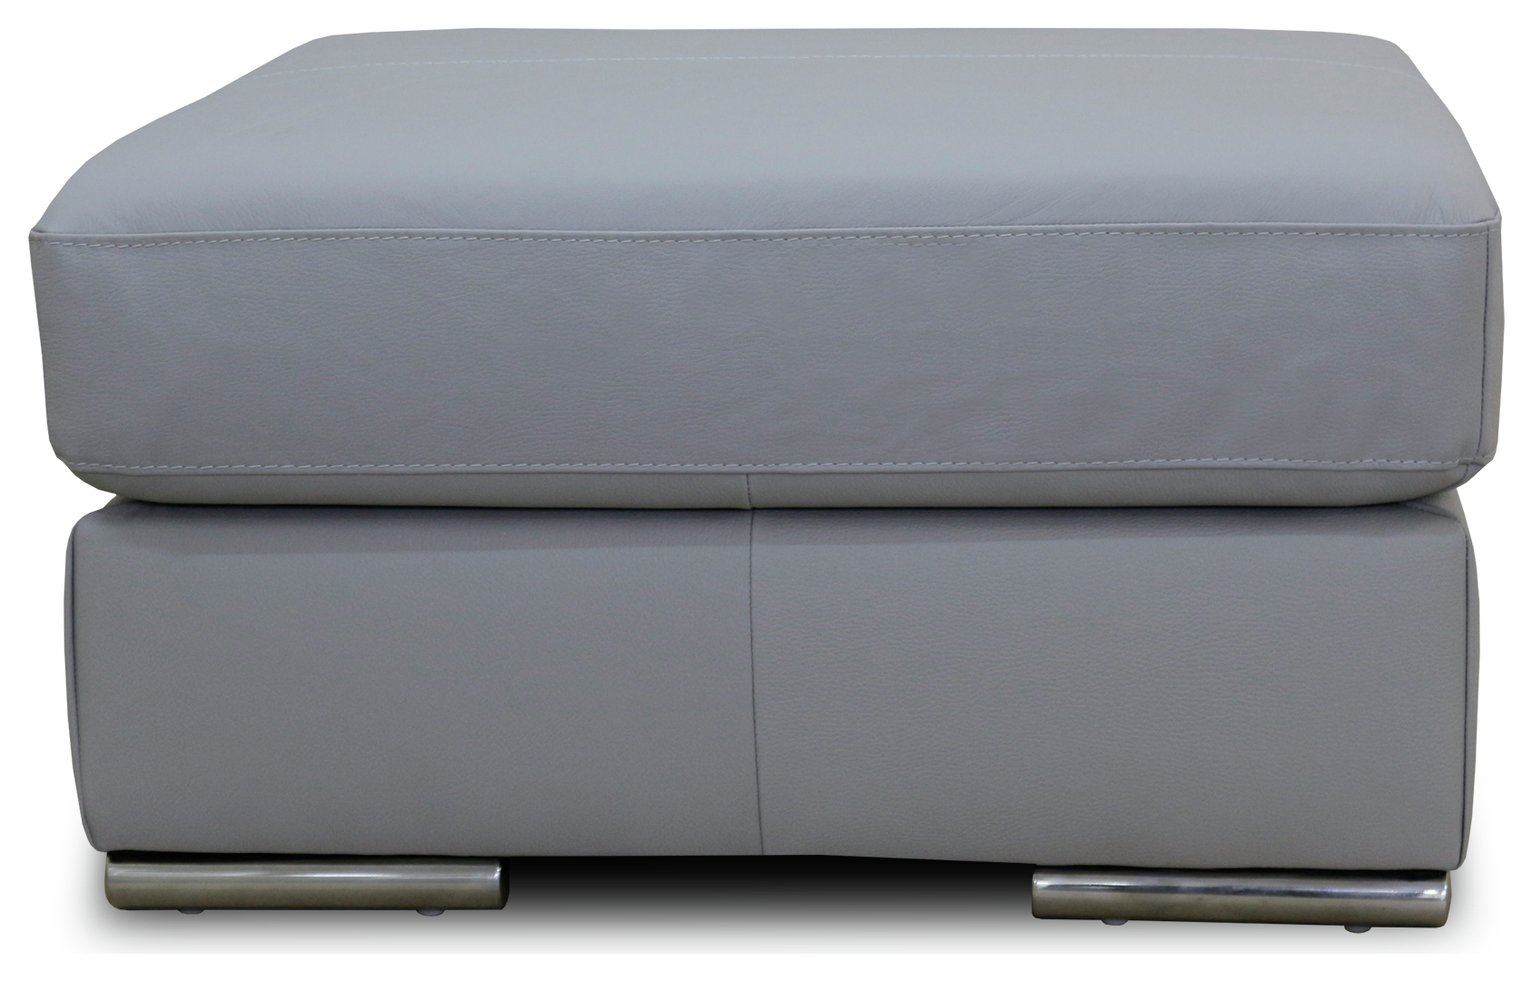 Sale On Hygena Valenica Leather Footstool Grey At